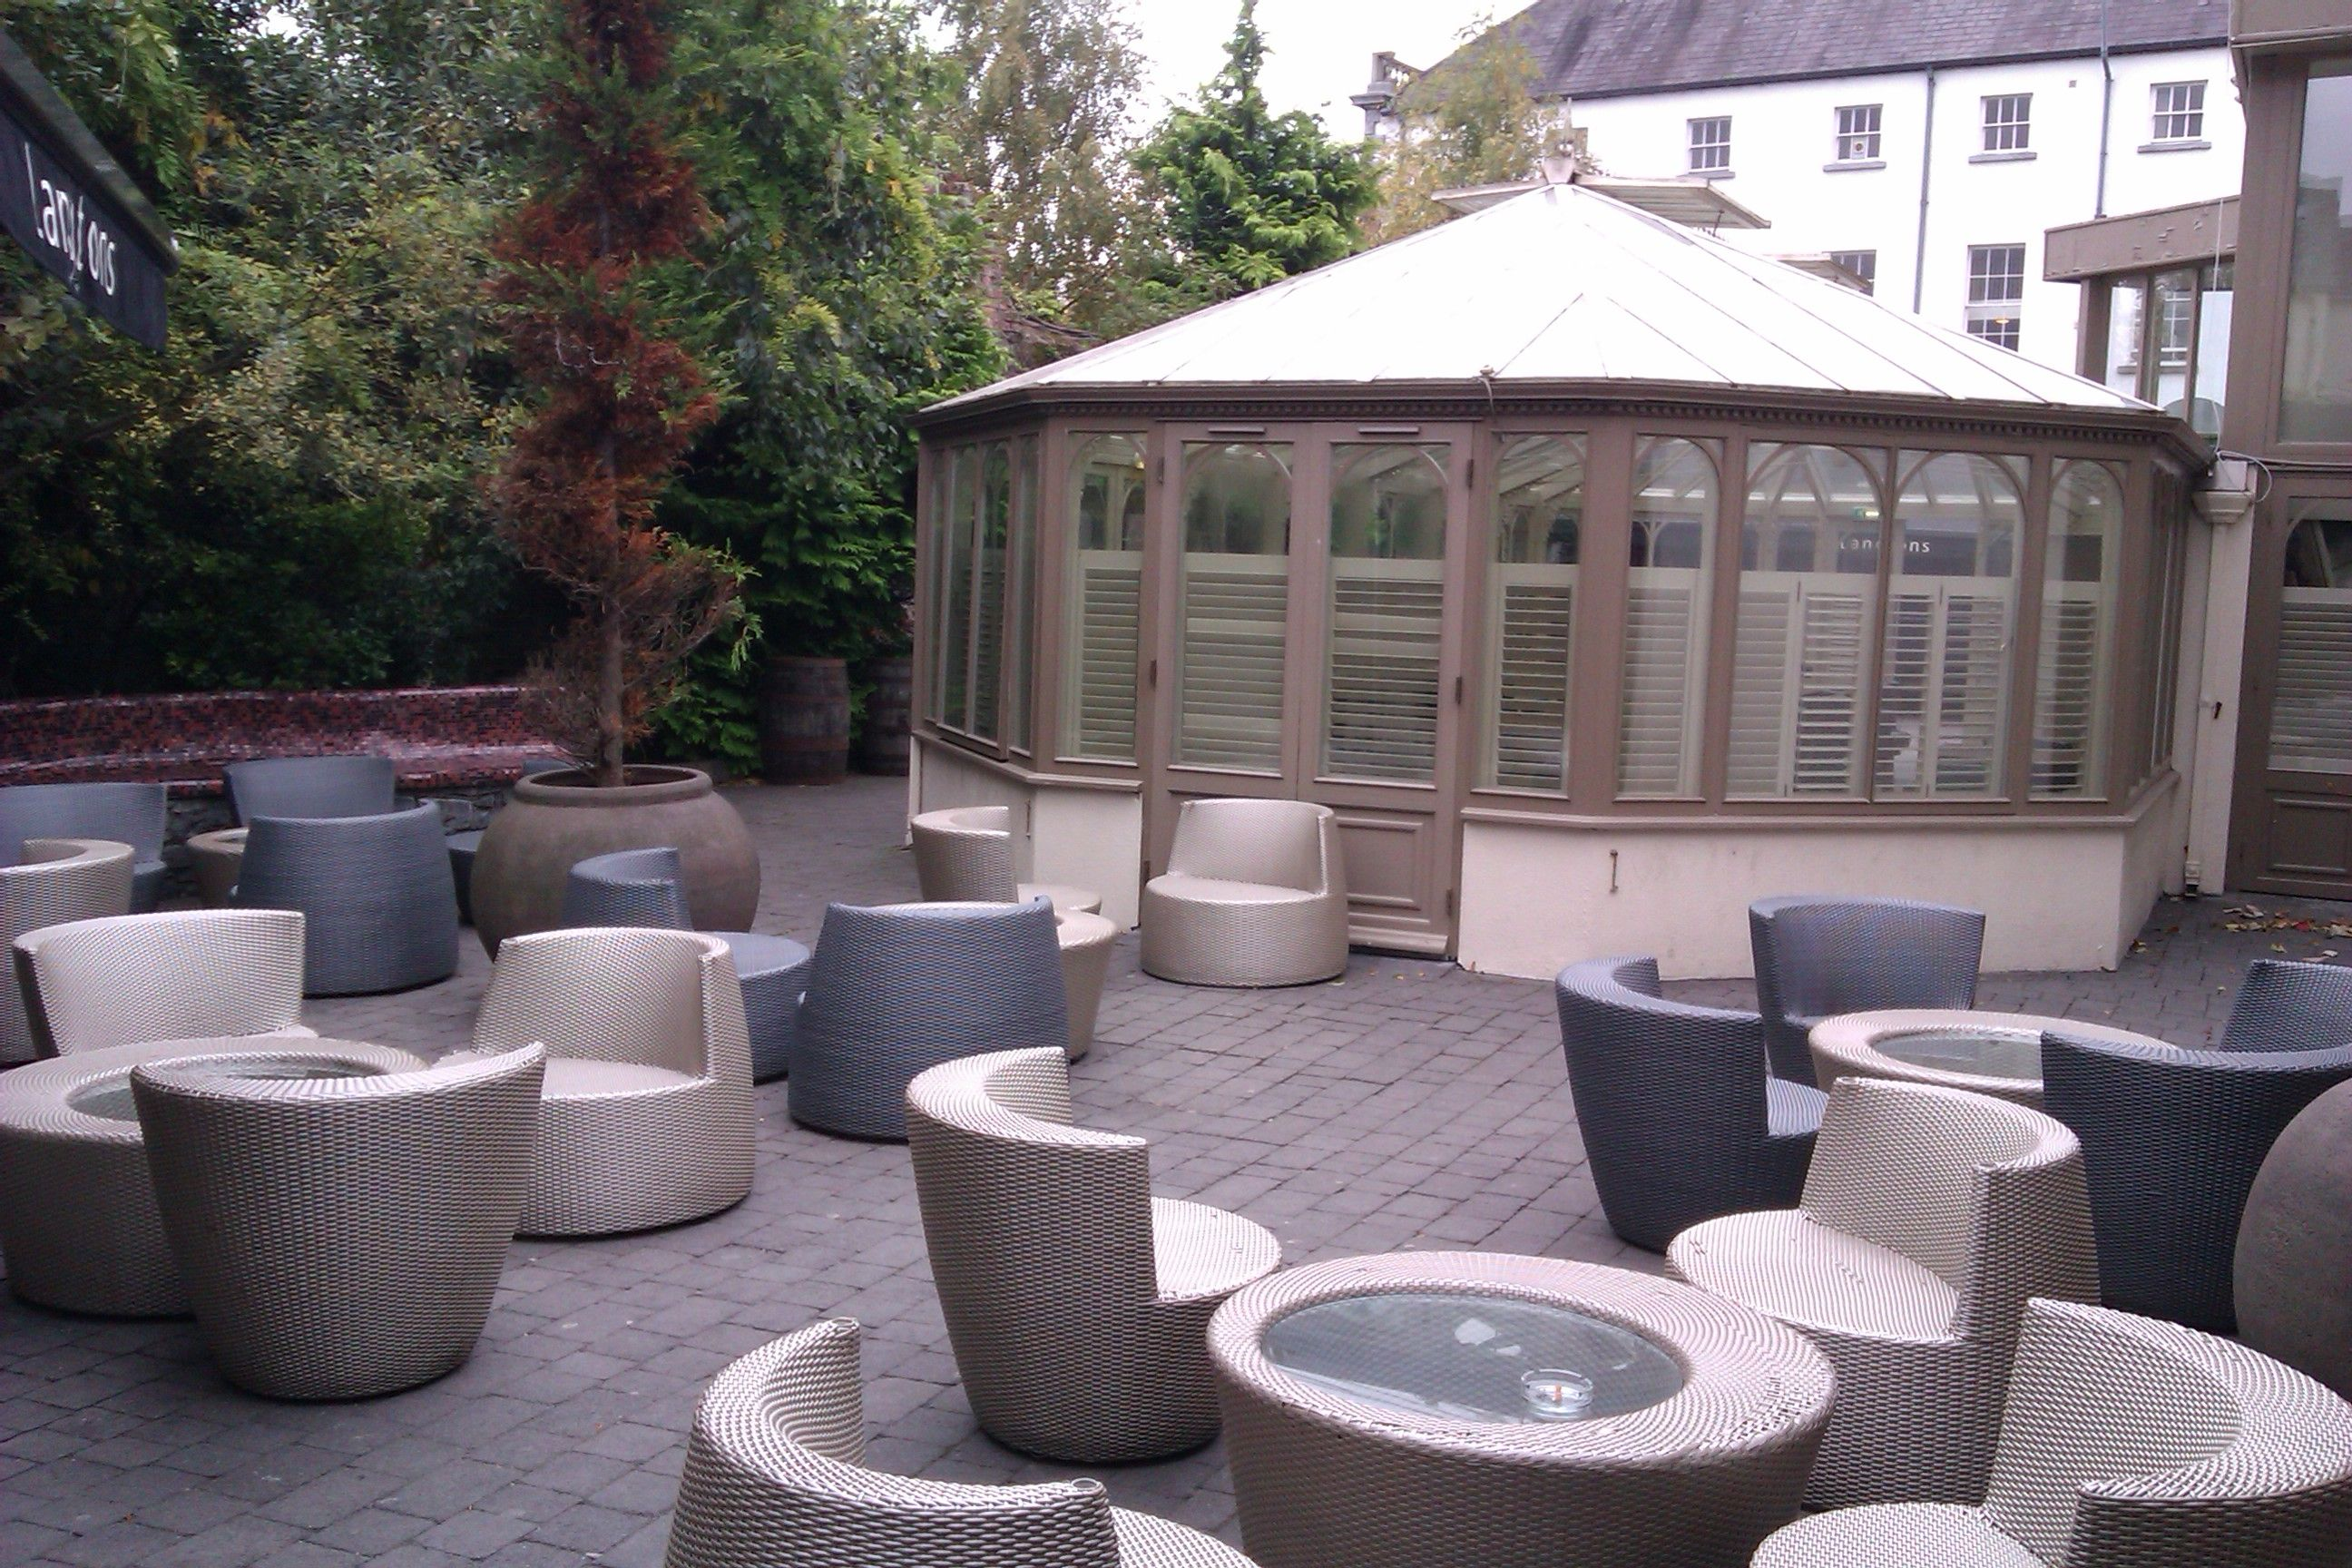 Garden Furniture Kilkenny beautiful conservatory and seating area - langtons kilkenny | my